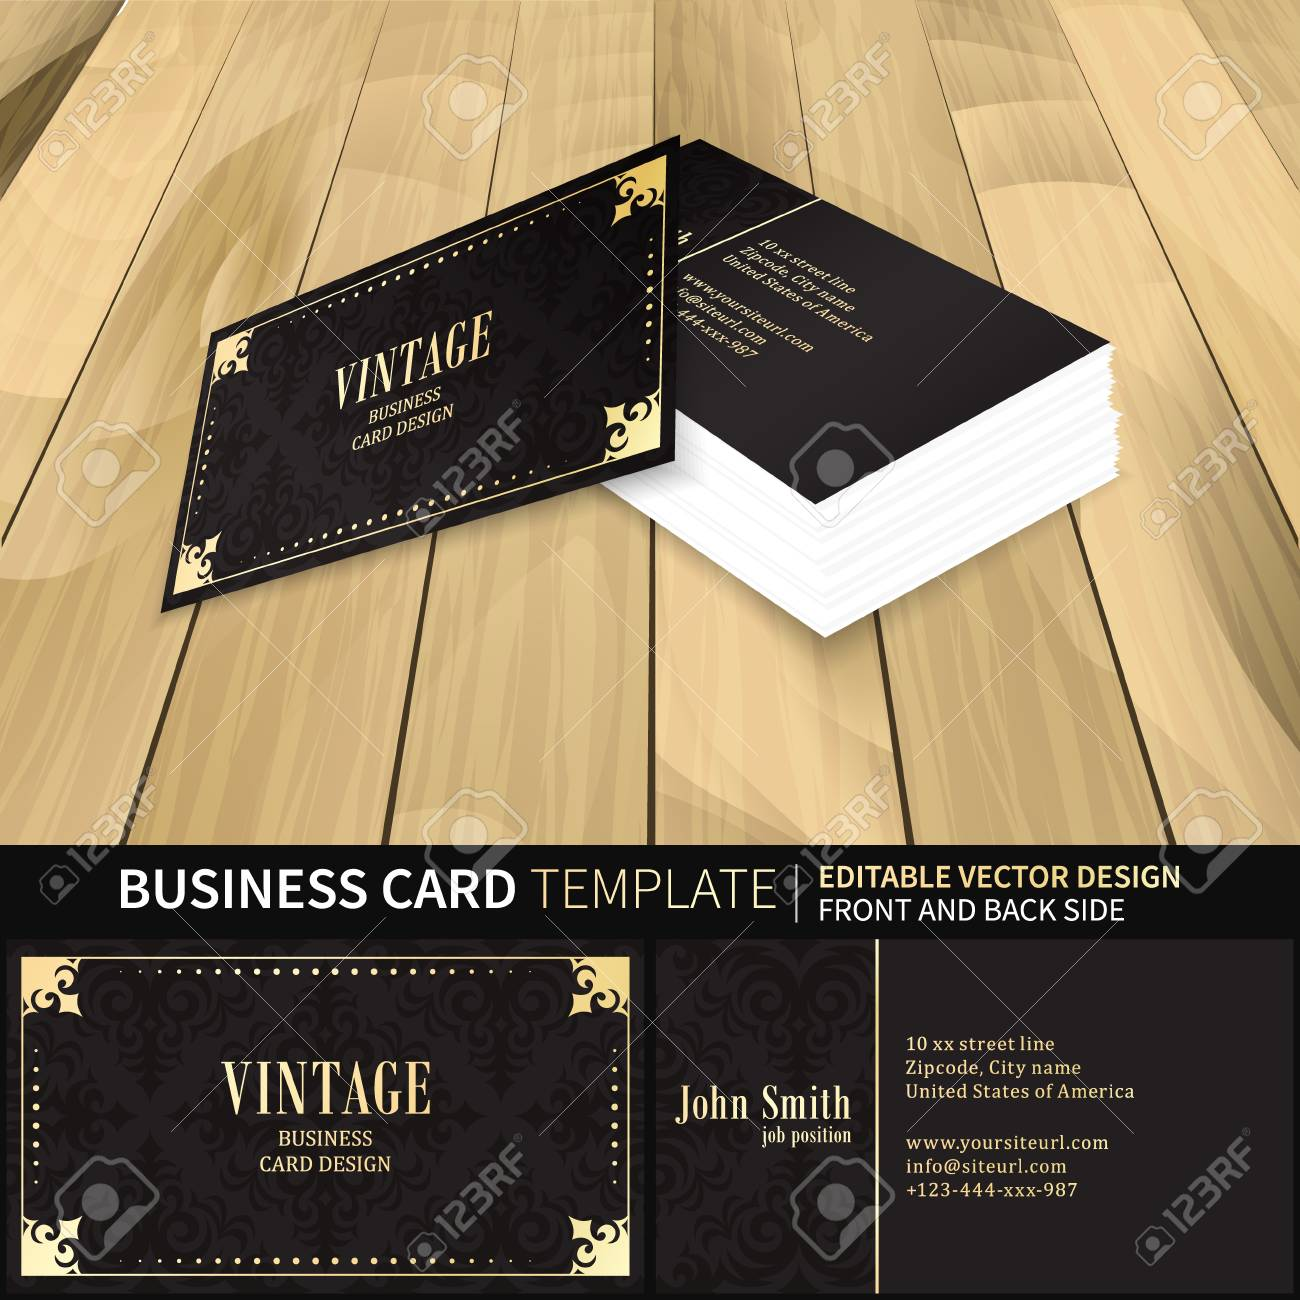 Vintage business card template with front and back side royalty vector vintage business card template with front and back side wajeb